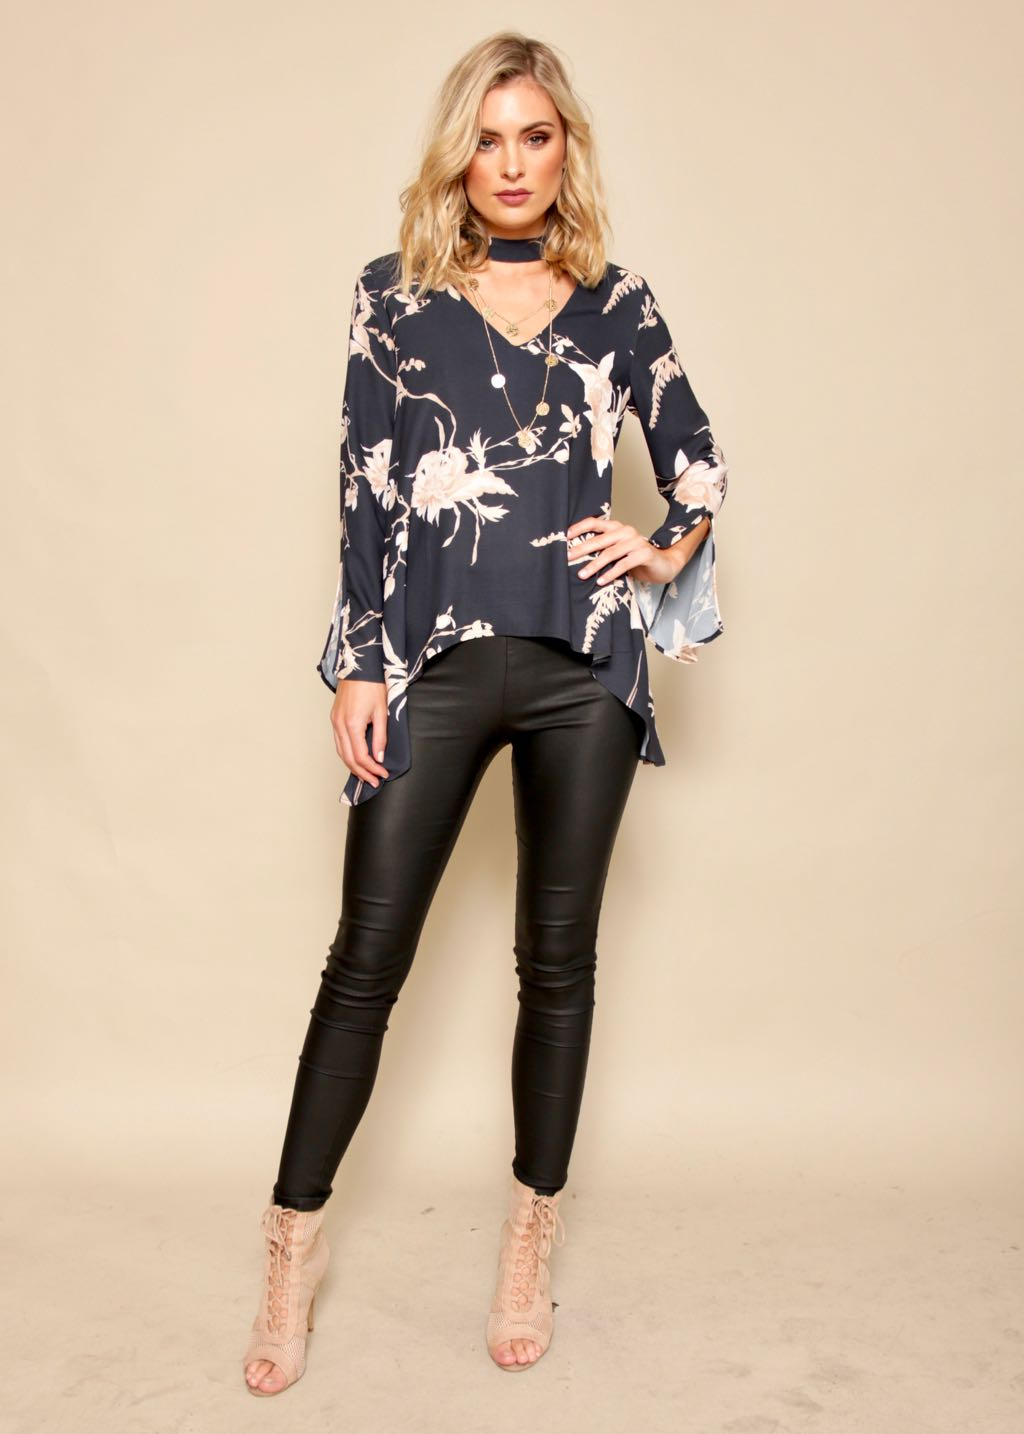 Smokescreen Blouse - Navy Floral